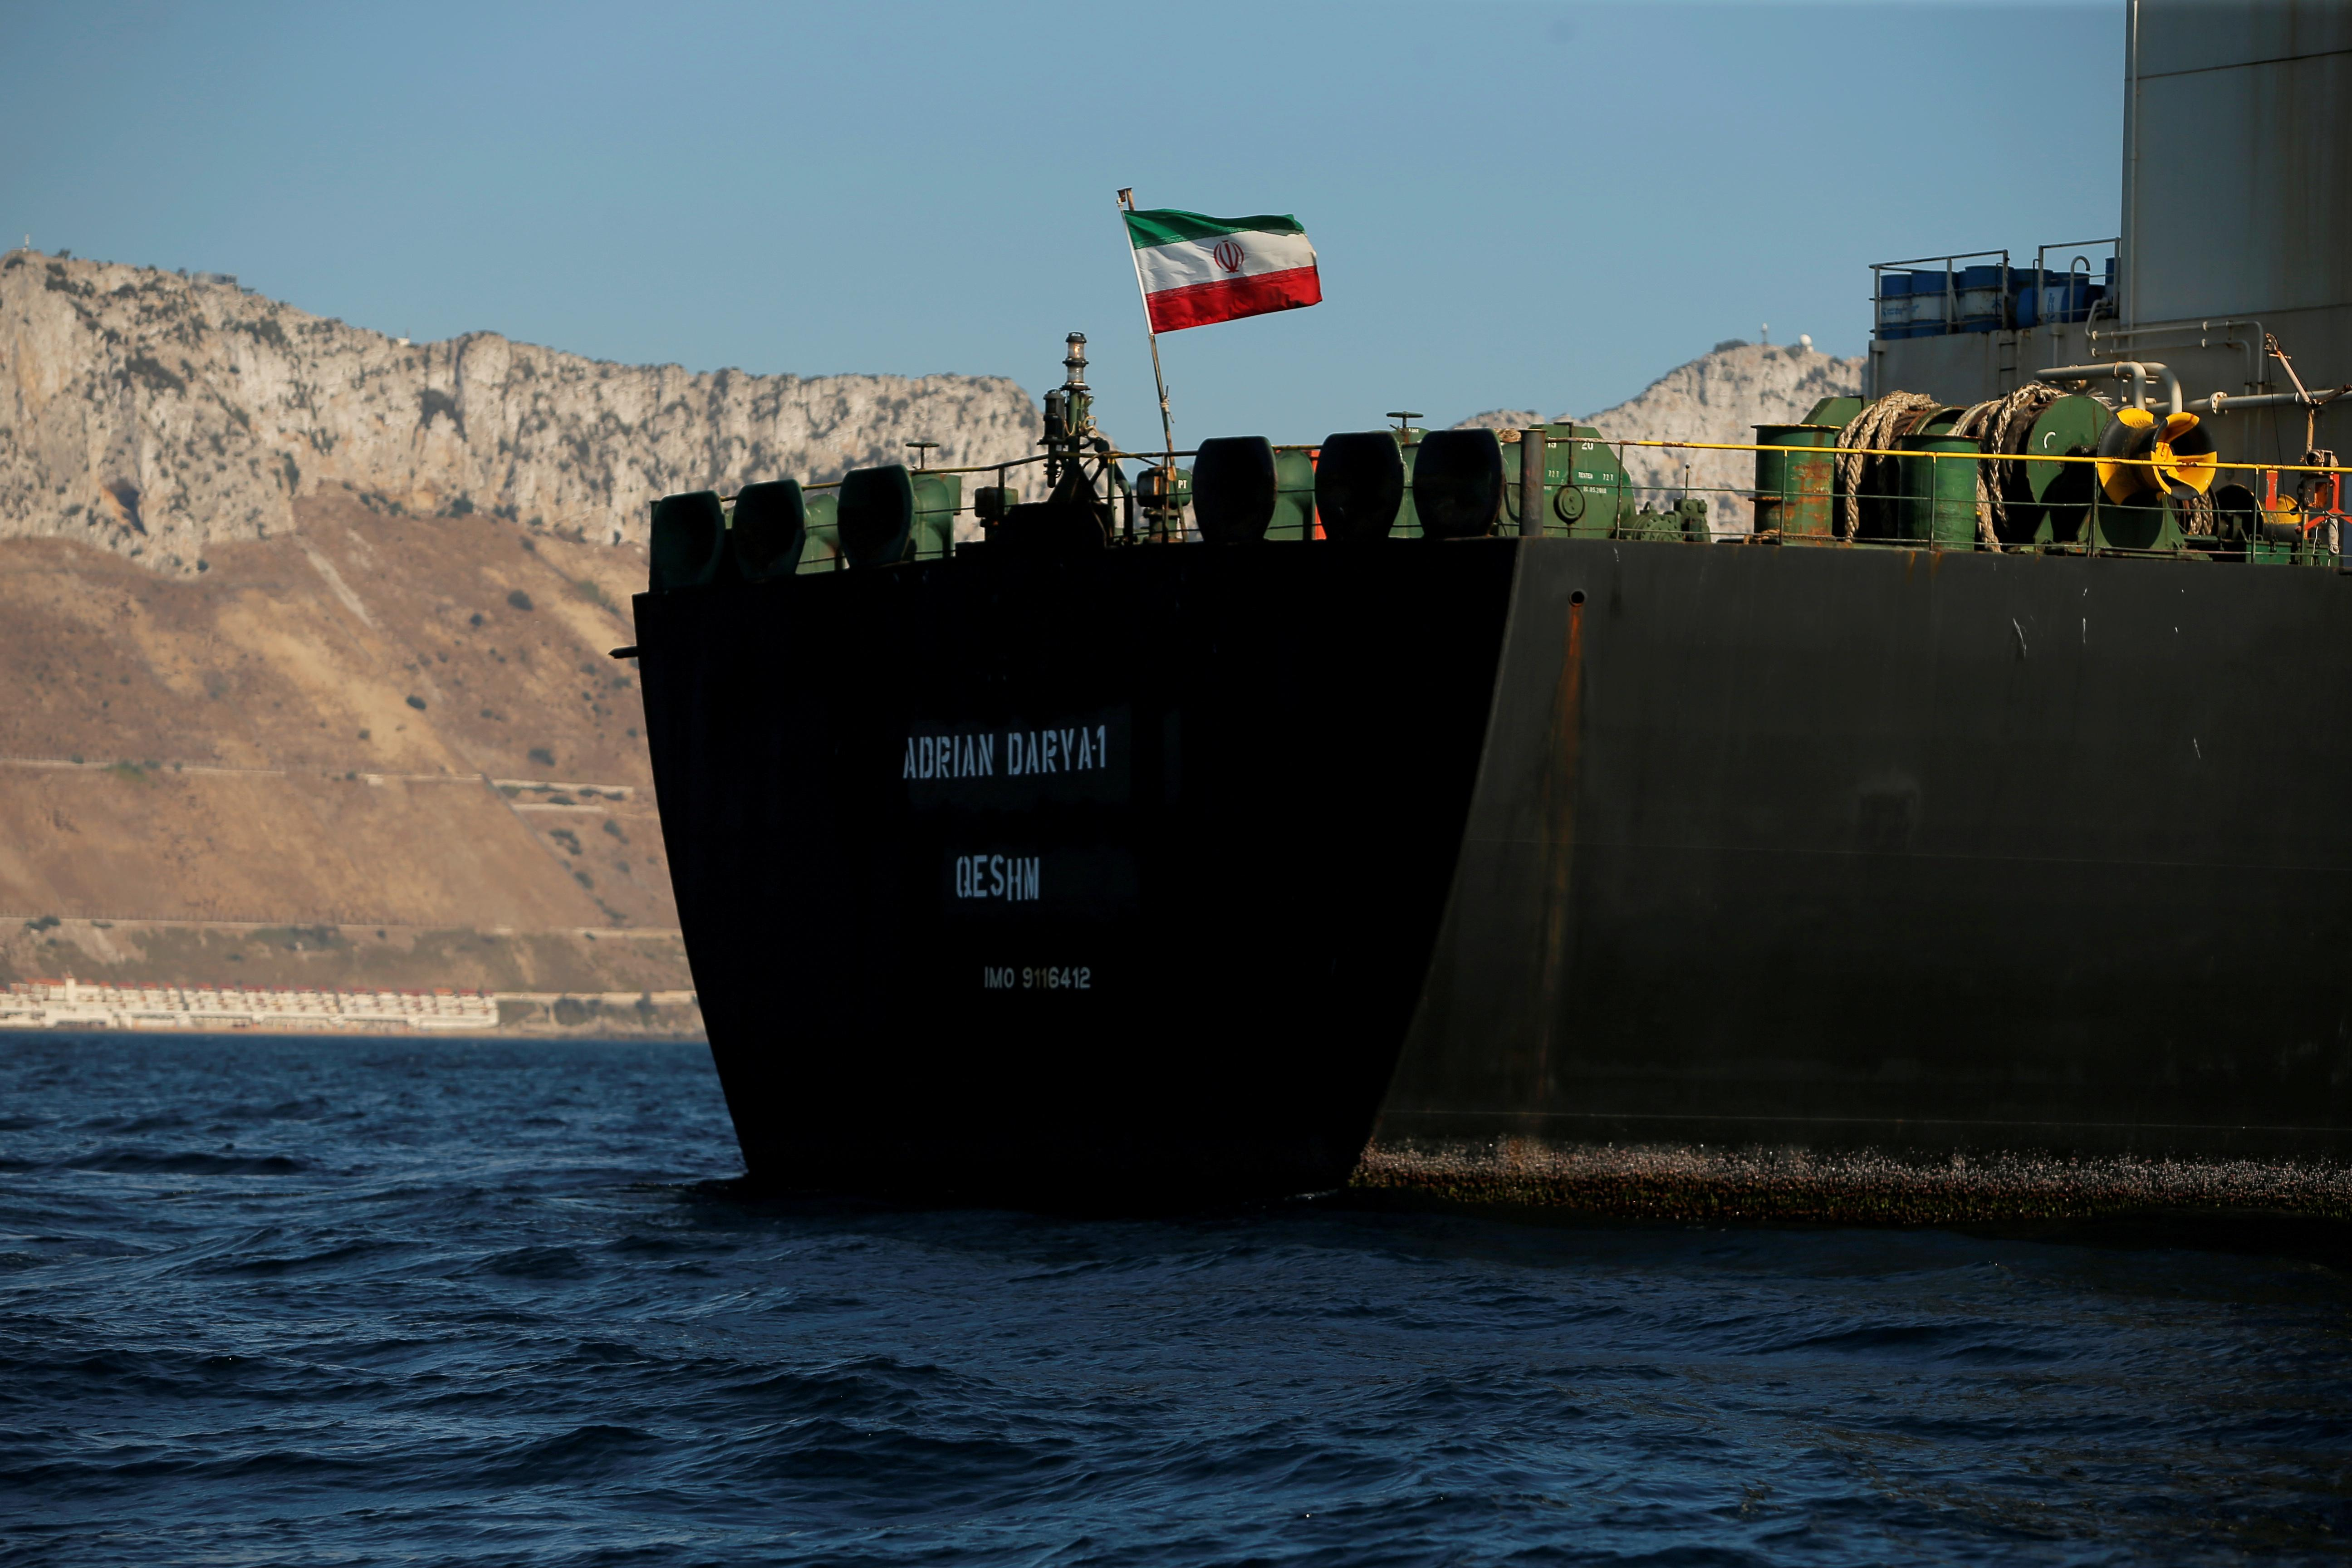 Iranian news agency says Adrian Darya tanker leased to Revolutionary Guards